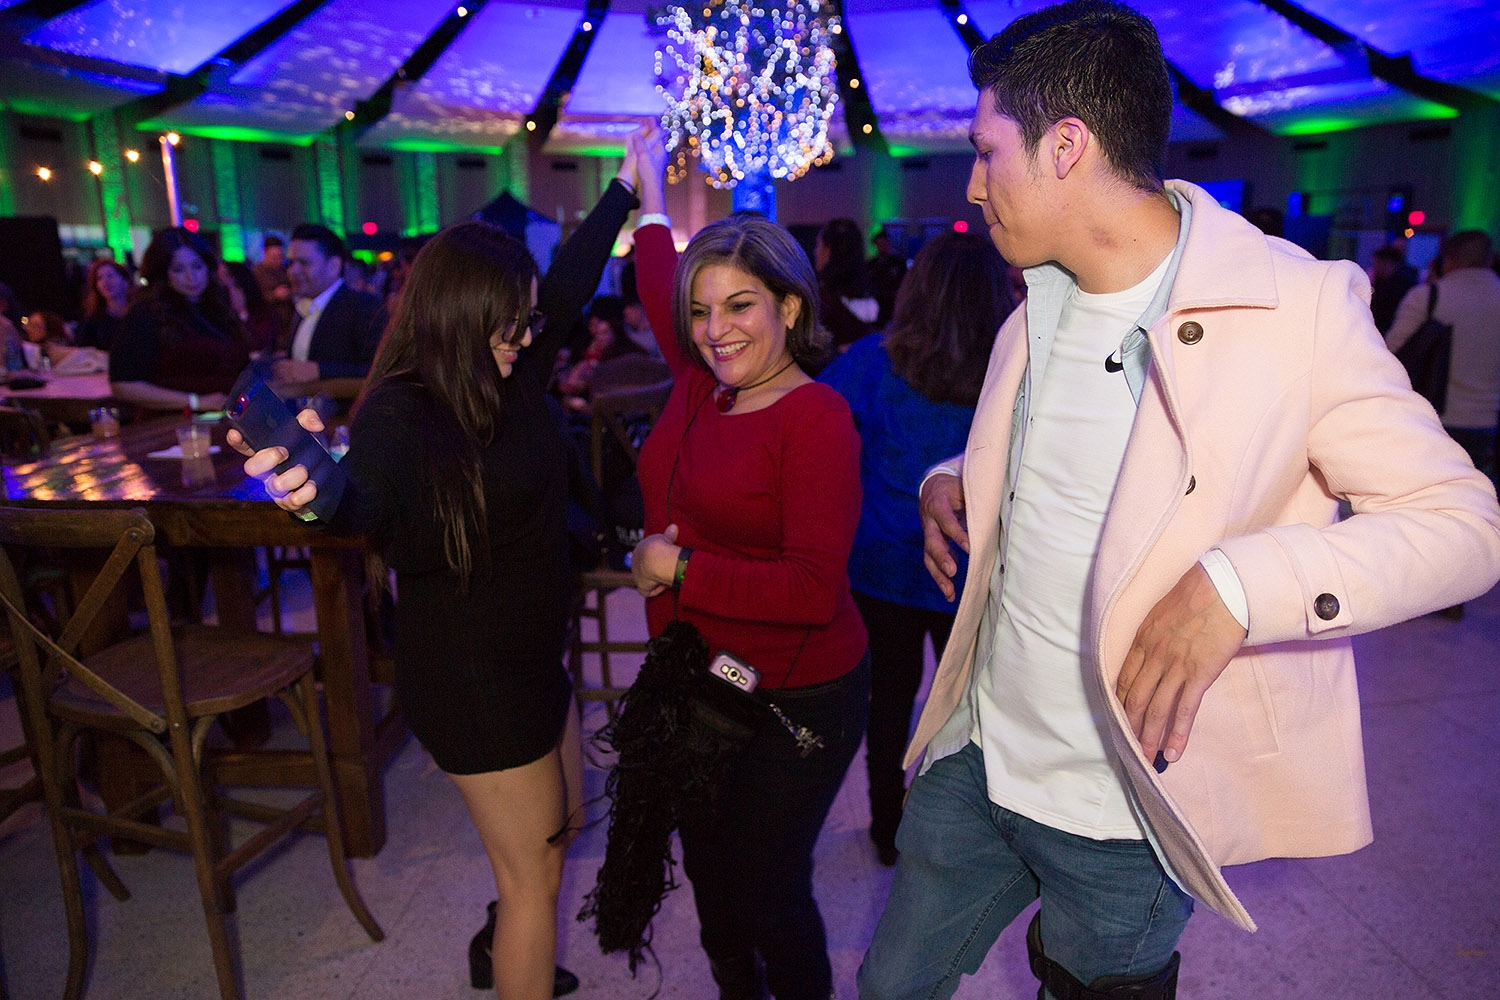 Cocktail enthusiasts attend Cocktails in the Enchanted Forest during the 2019 San Antonio Cocktail Festival Saturday night at Villita Assembly Hall.